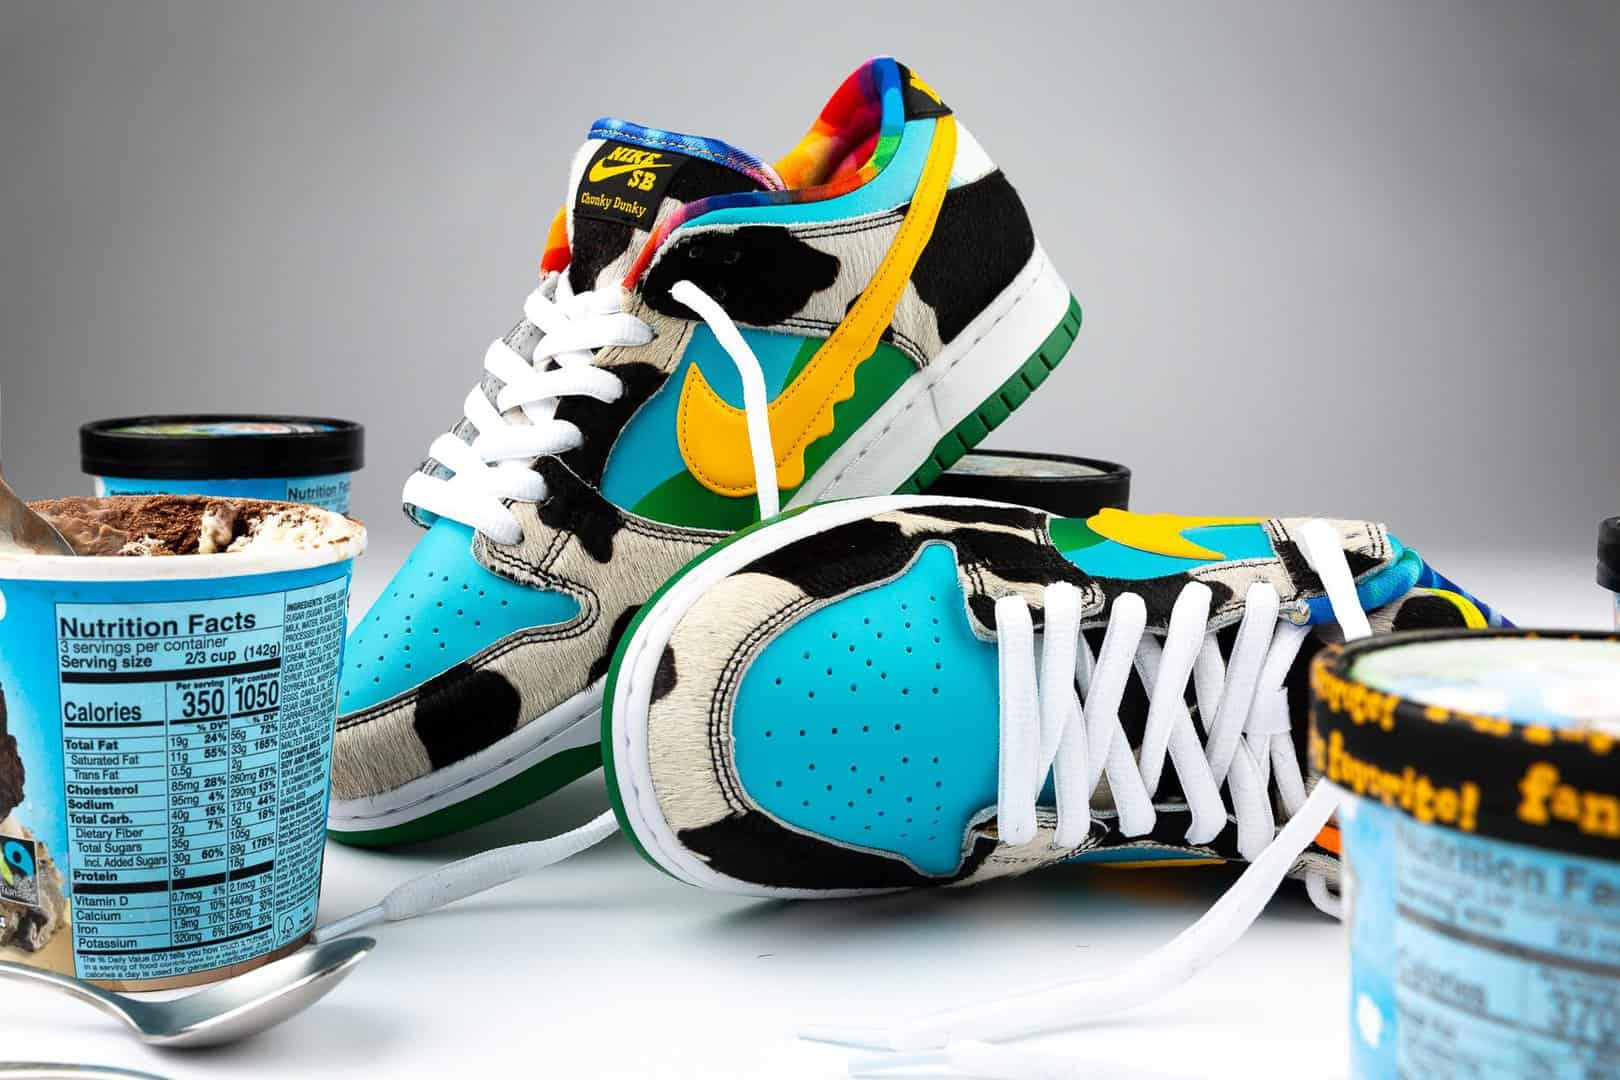 Chunky Dunky shoes with ice cream.